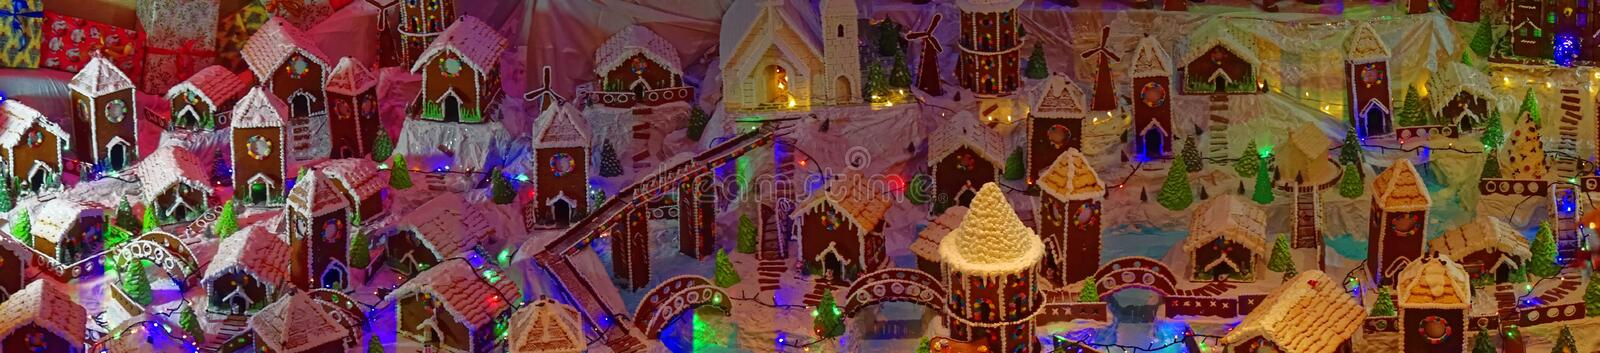 Panorma of a Gingerbread Village royalty free stock photography